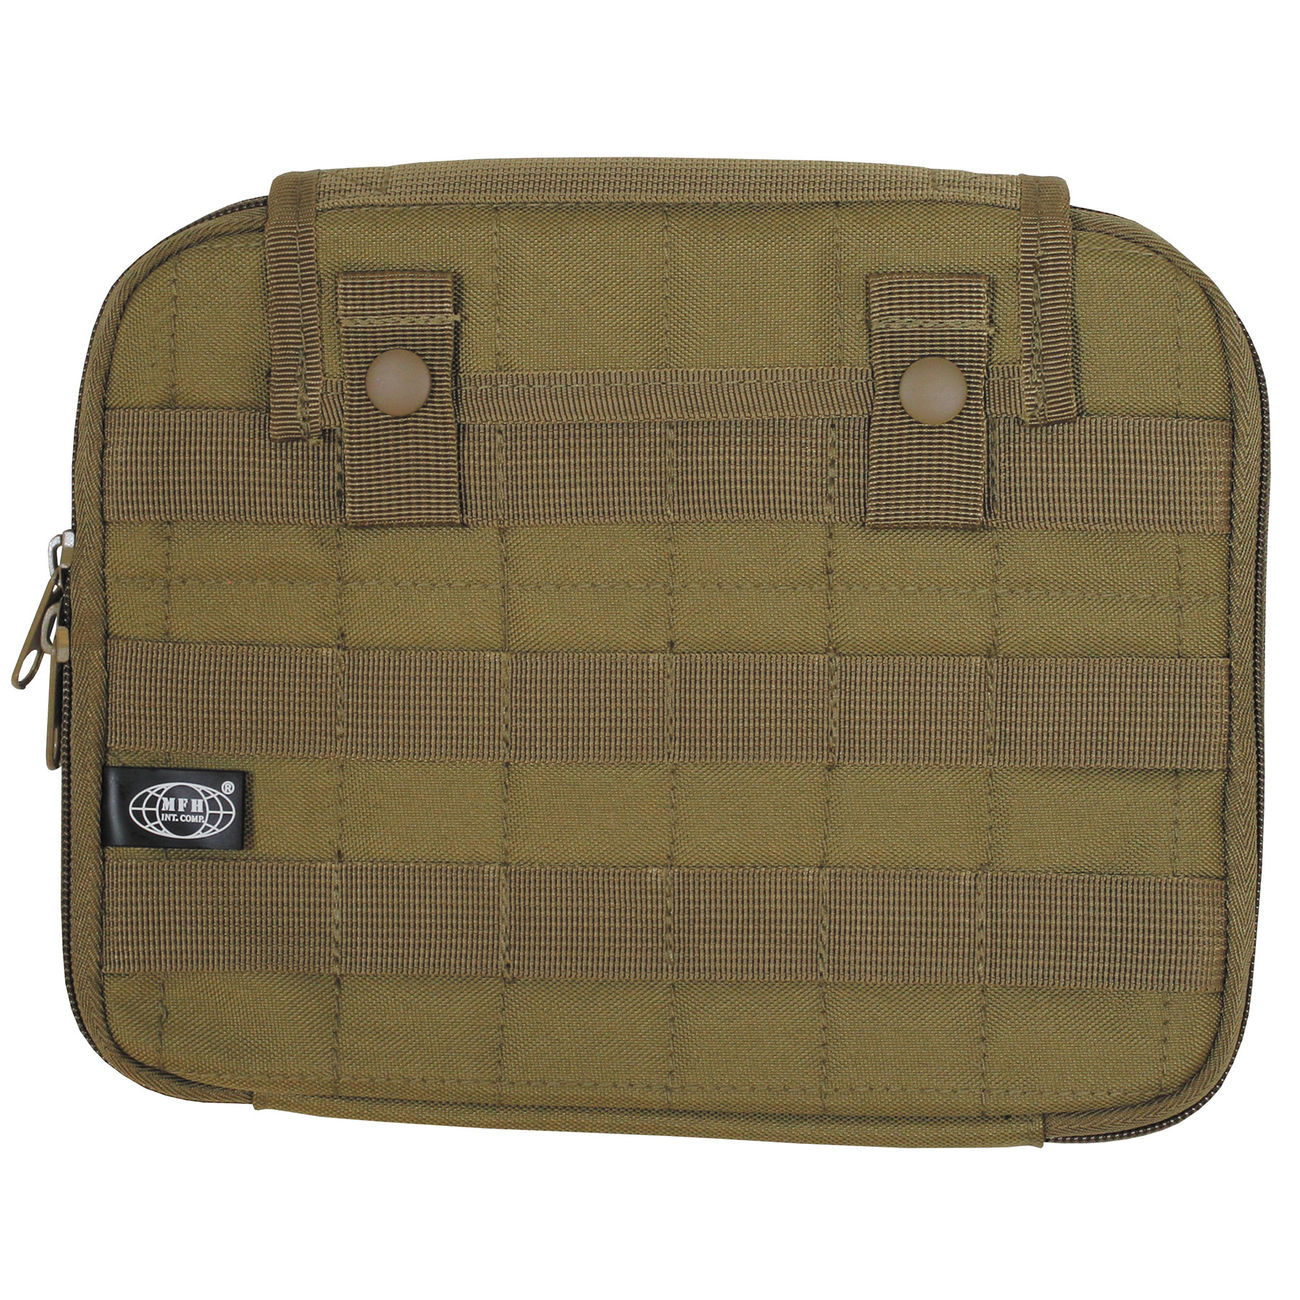 MFH Tablet-Tasche Molle coyote tan 1